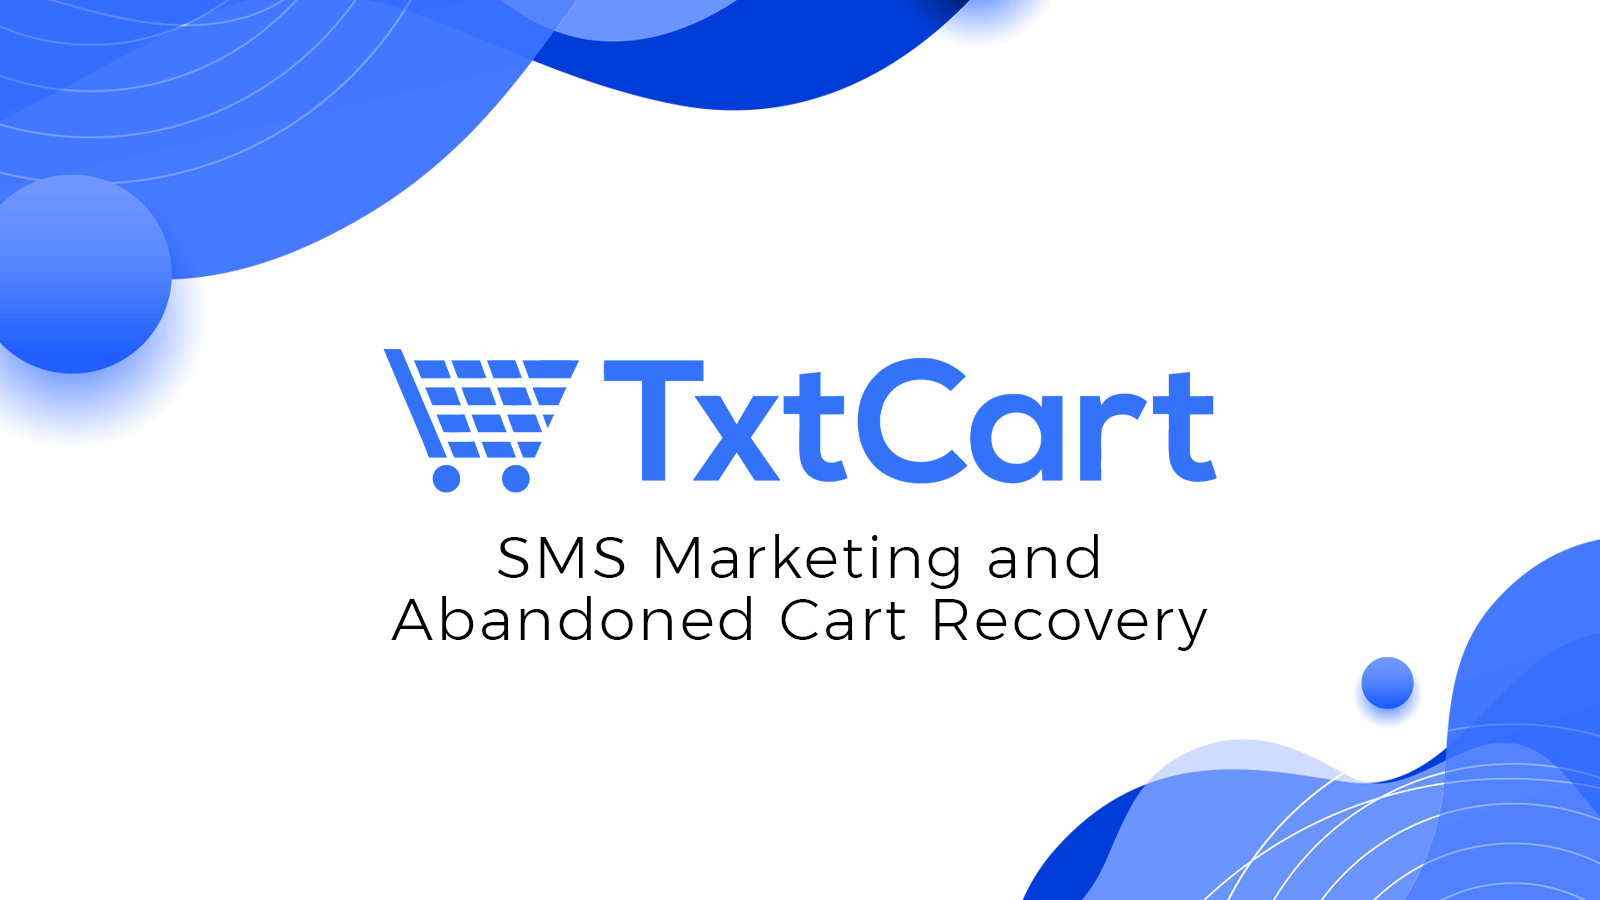 SMS, MMS, SMS Marketing, Abandoned Cart Recovery, Cart Recovery